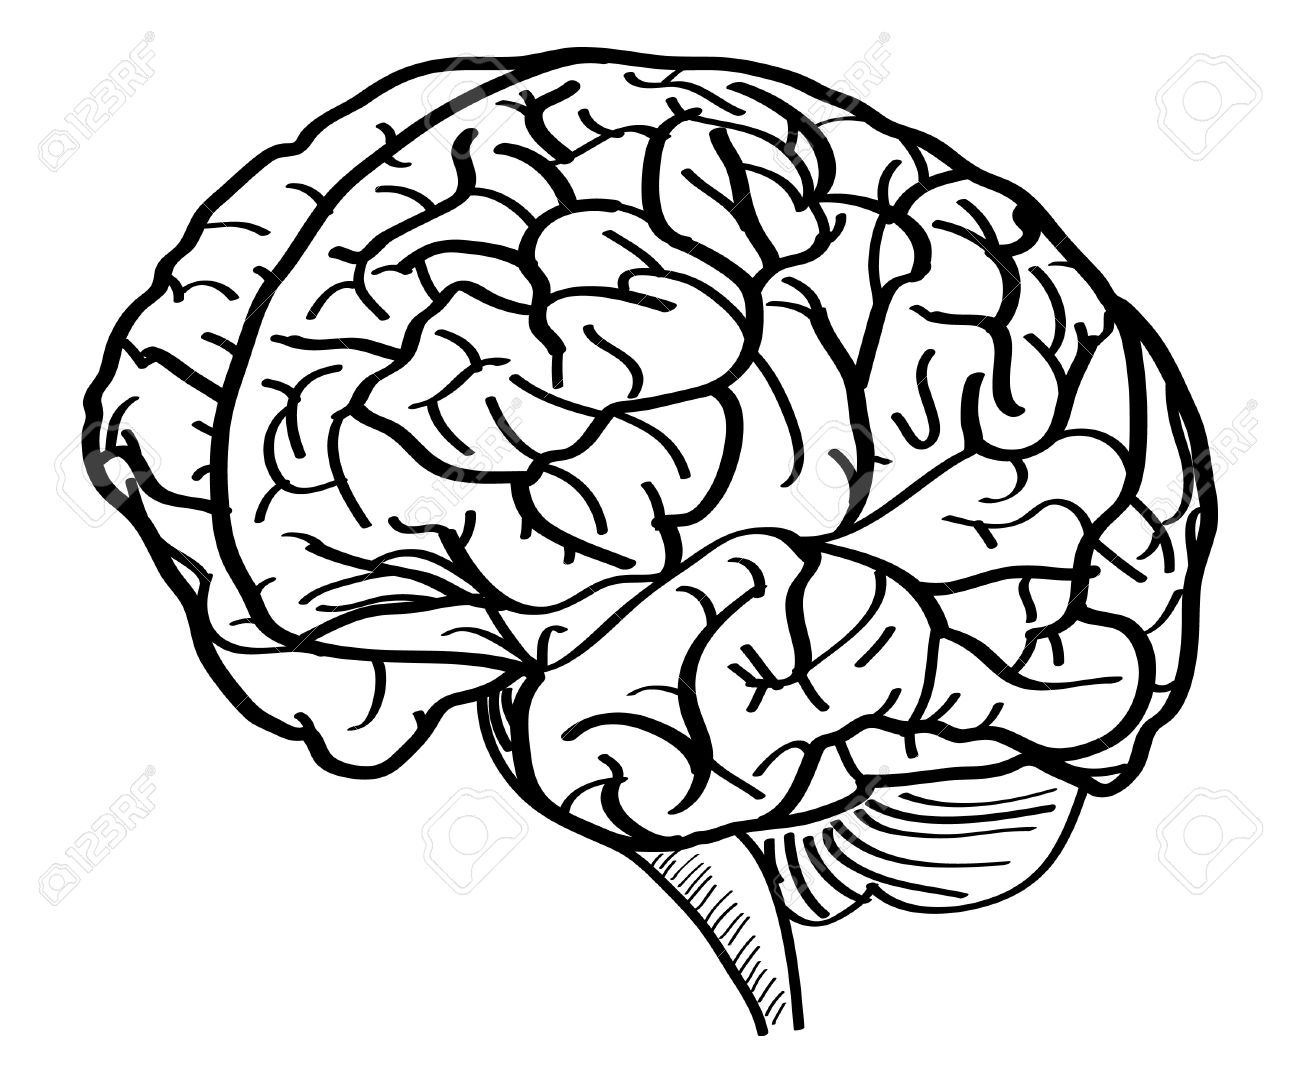 Line Drawing Of Brain at GetDrawings.com | Free for ...